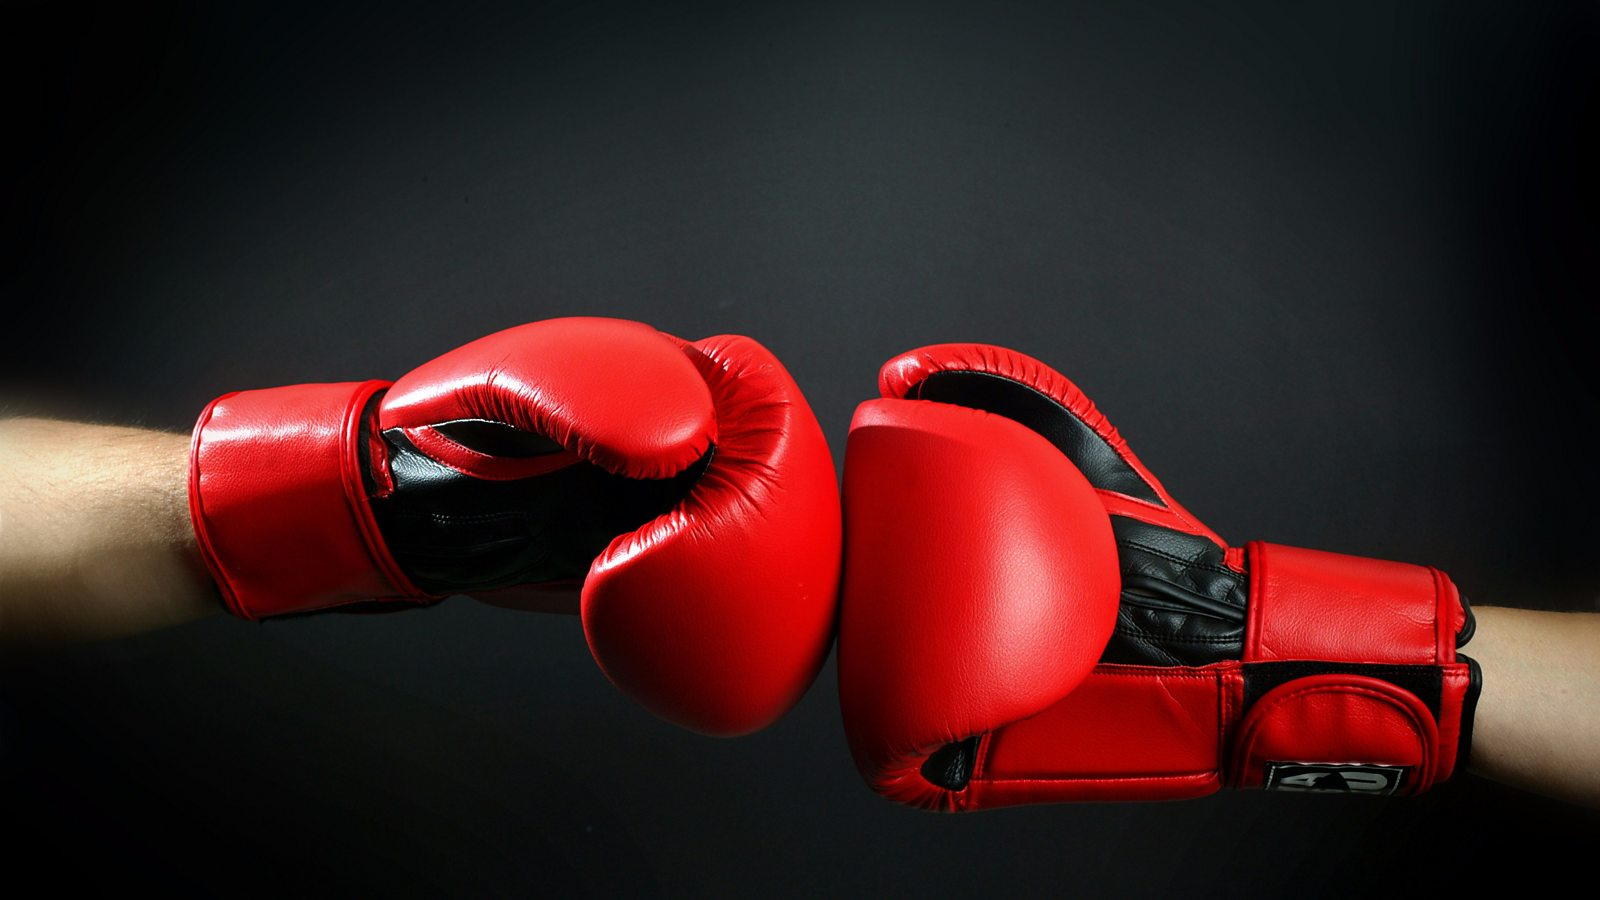 should boxing be banned debate